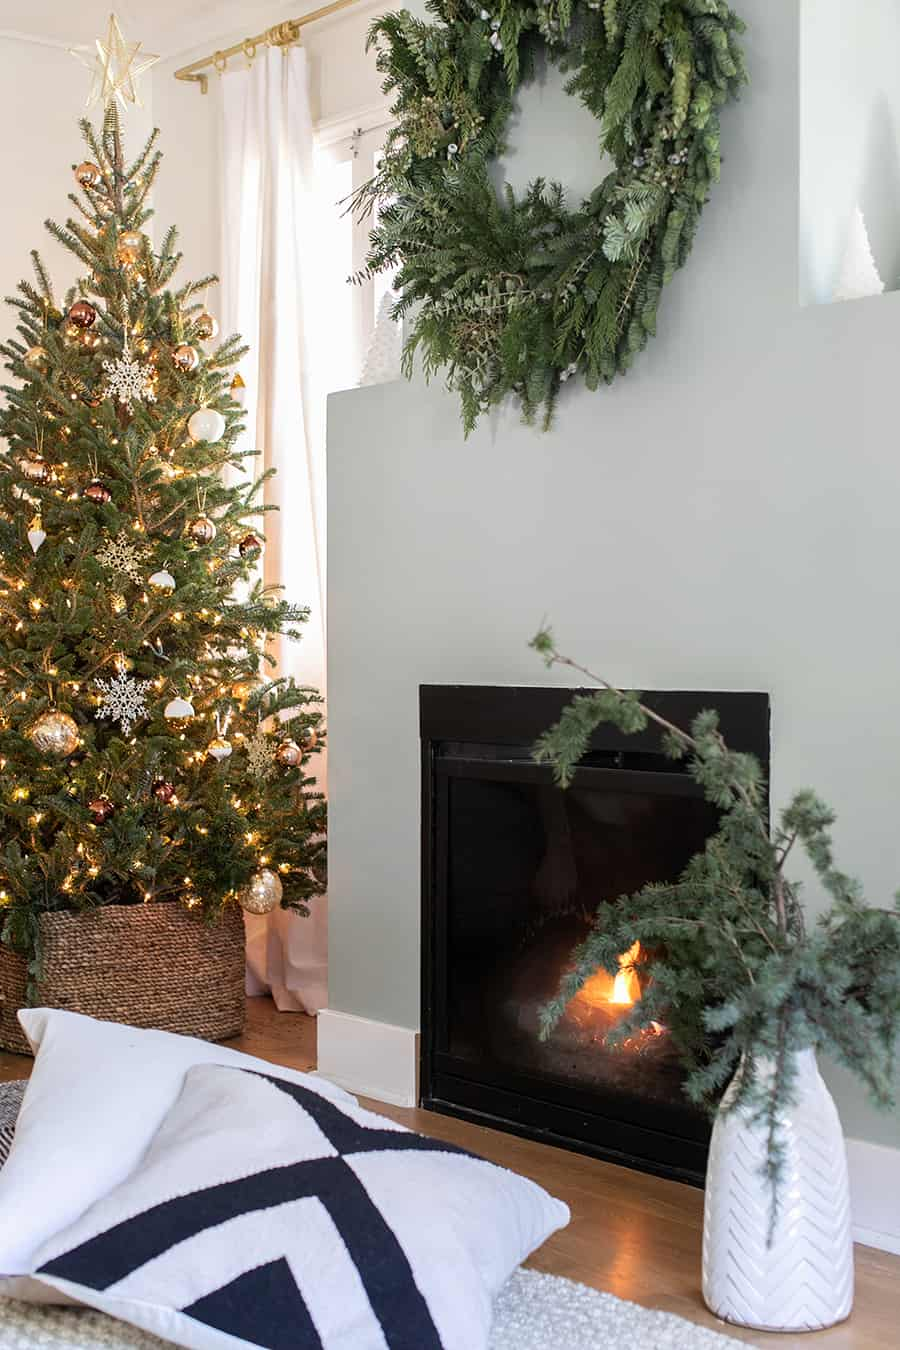 pictures of living room decorated for christmas decorating ideas beige couch decor sugar and charm